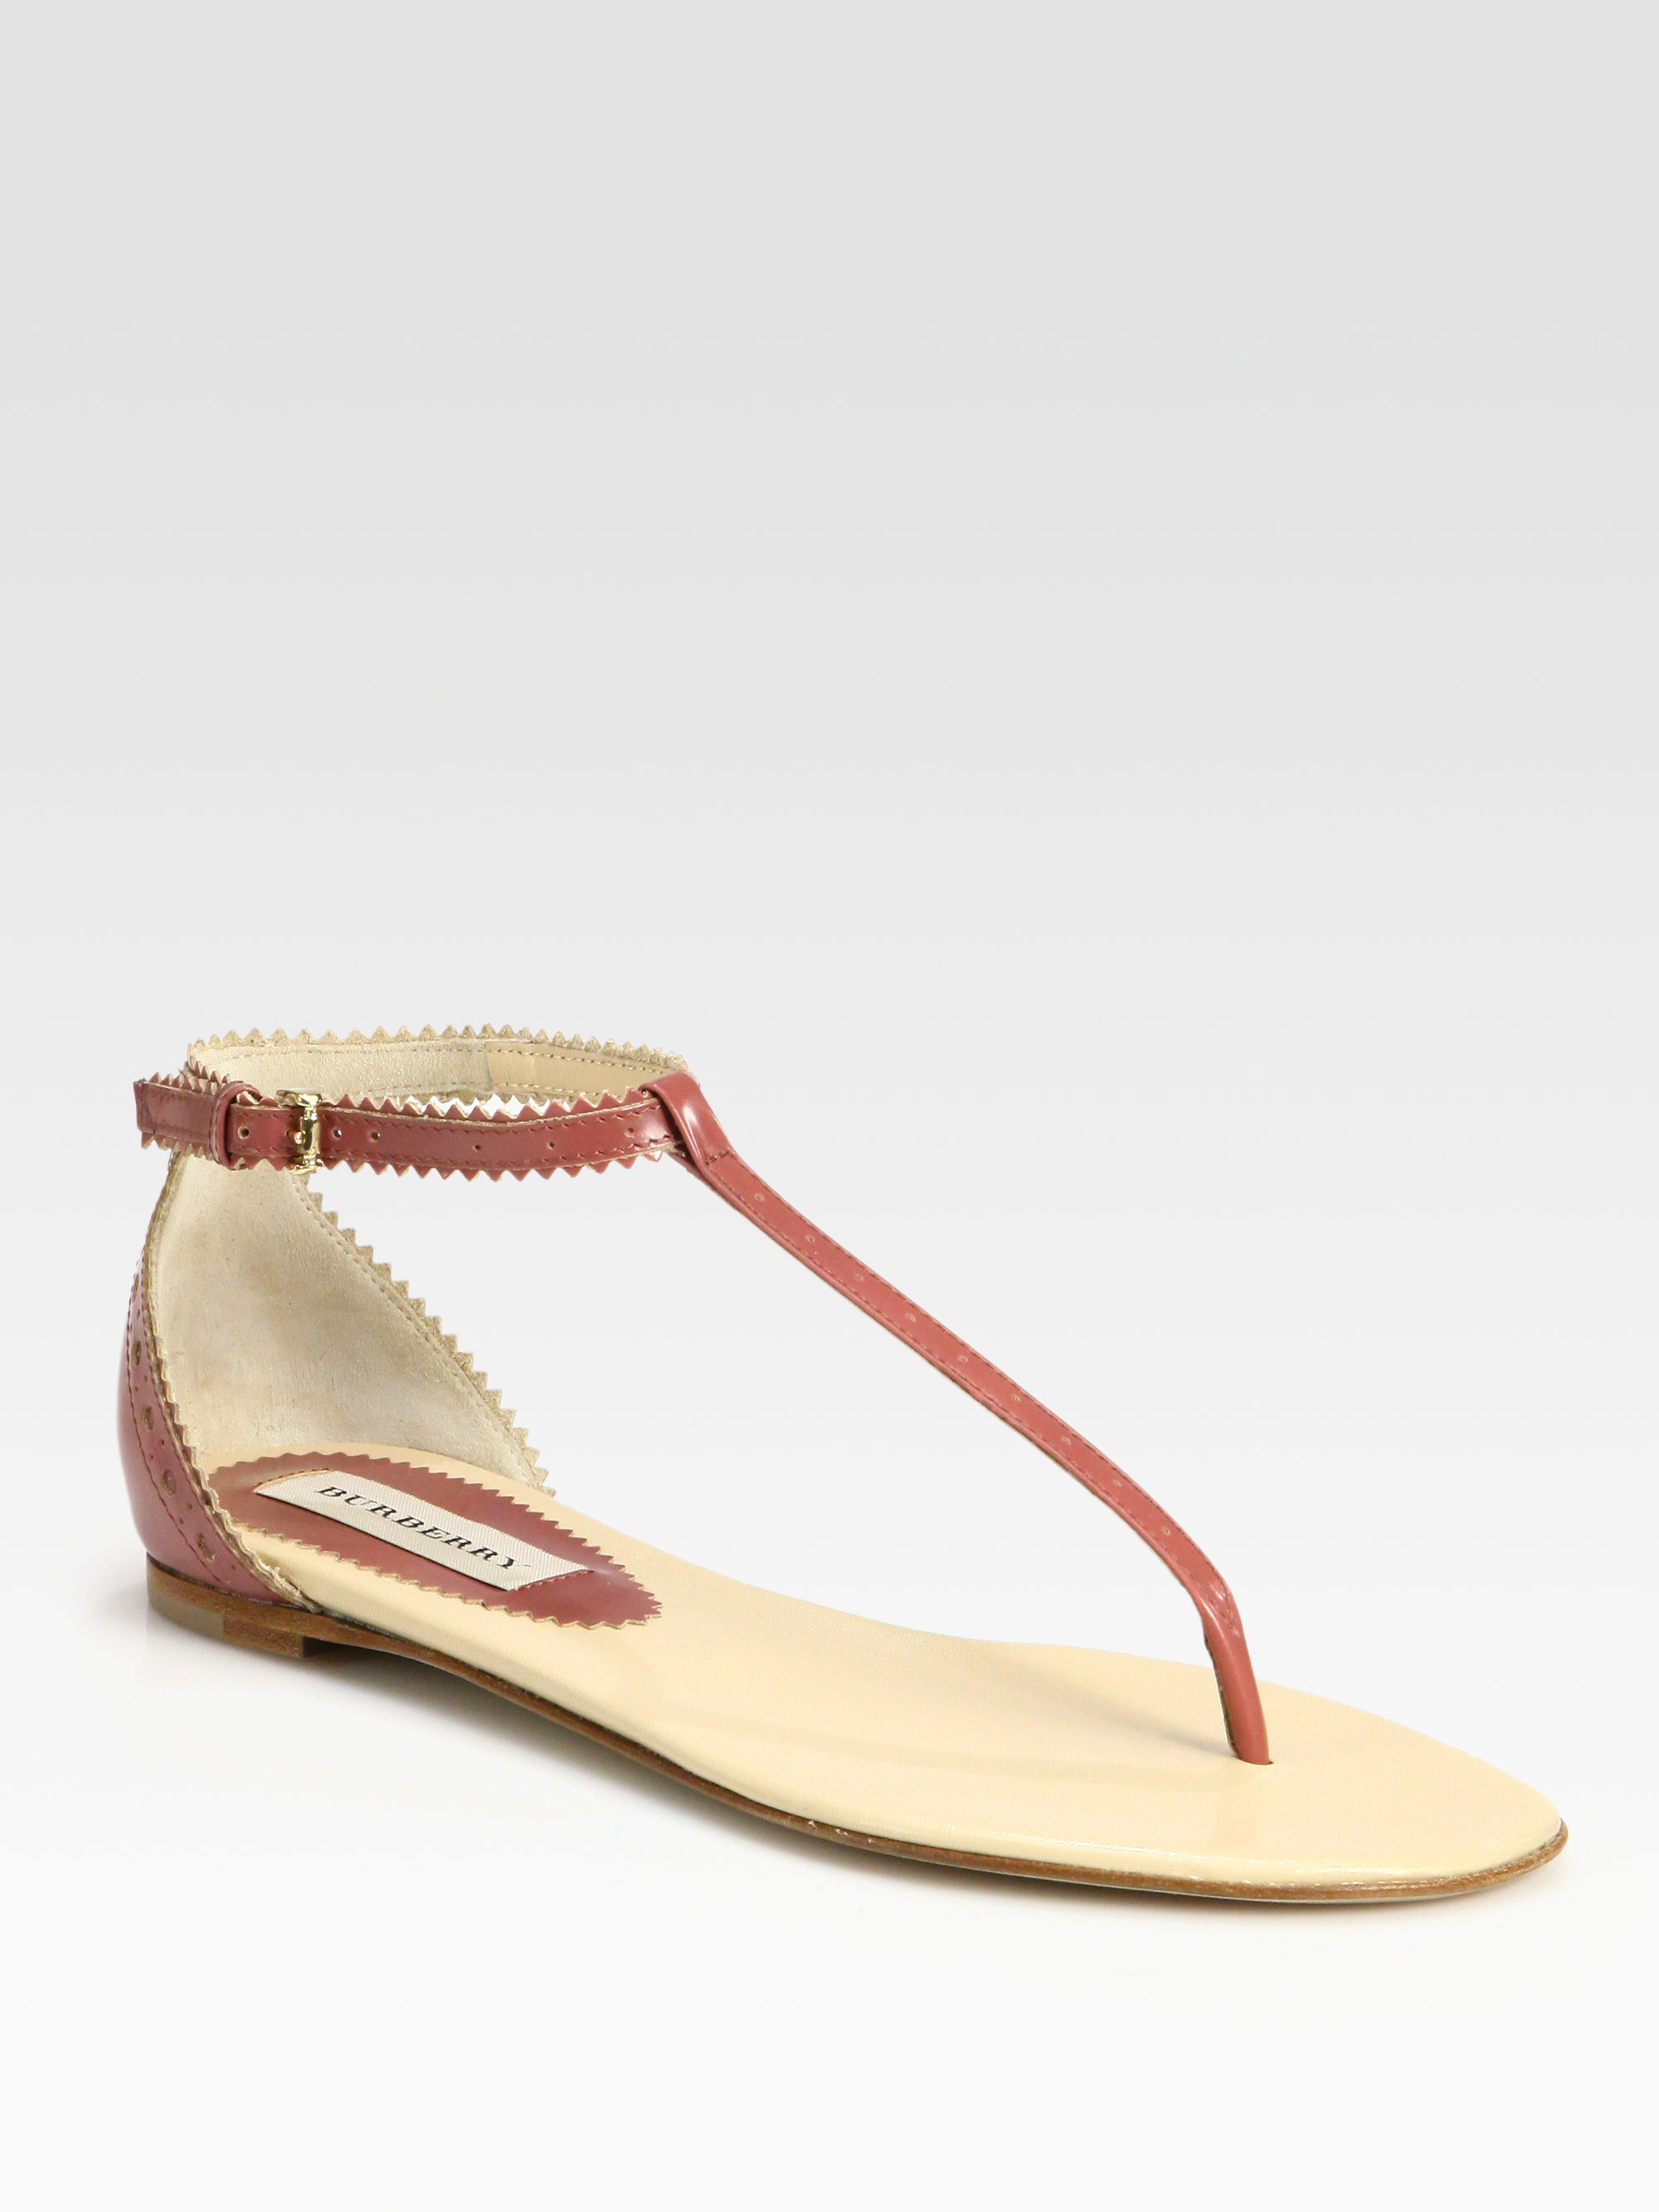 Burberry Leather Thong Sandals clearance online fake wKCee